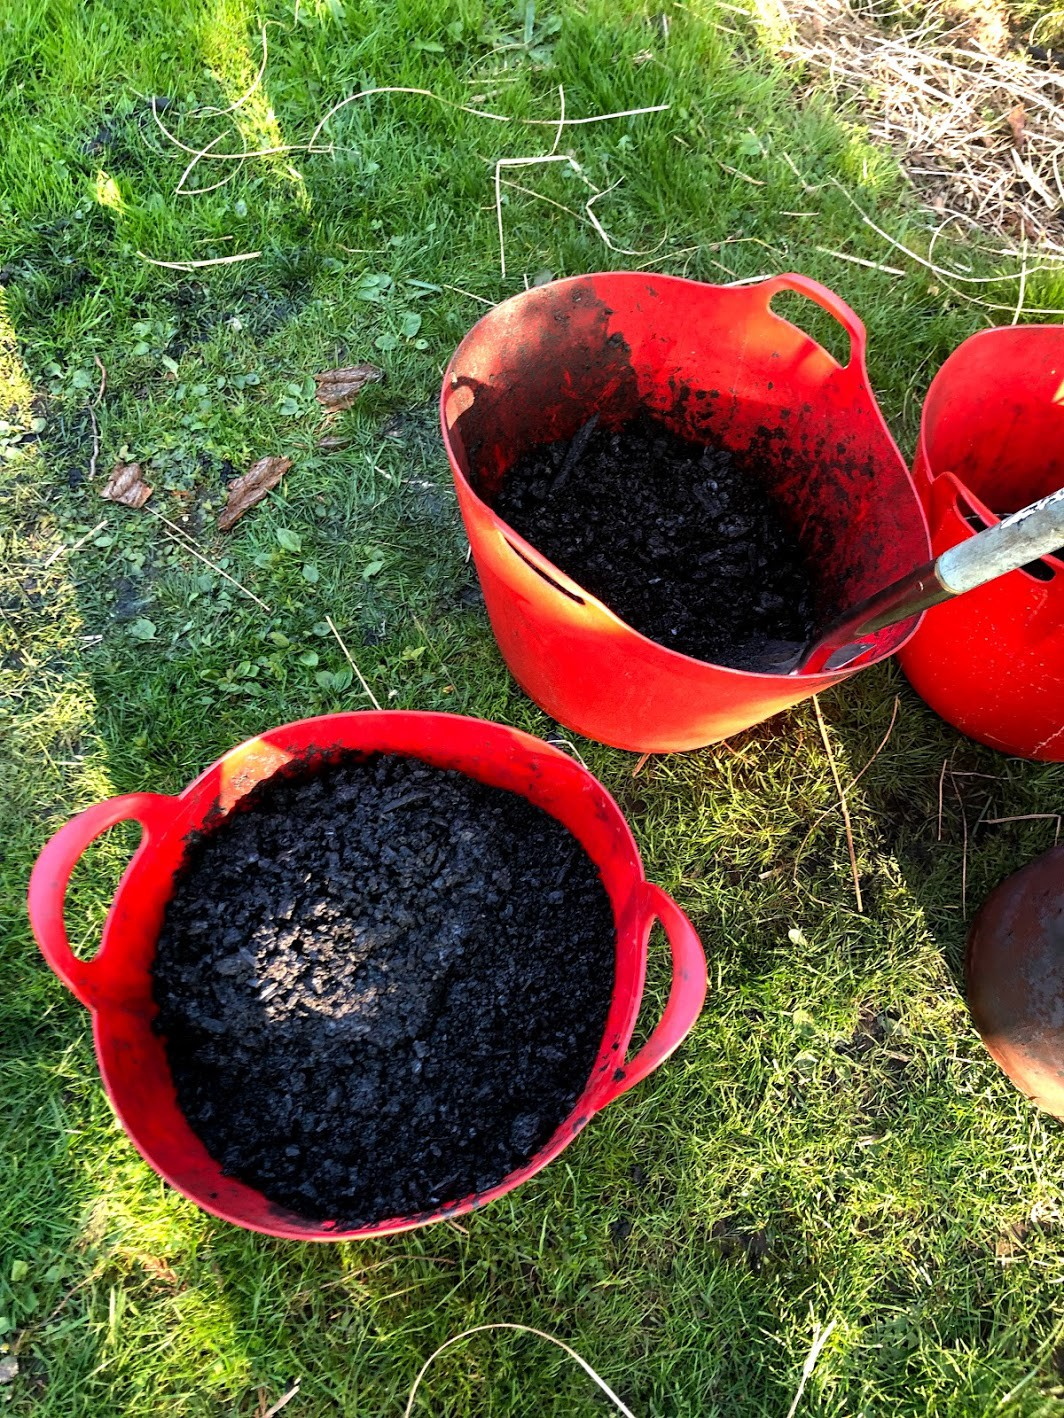 biochar crushed up in red buckets